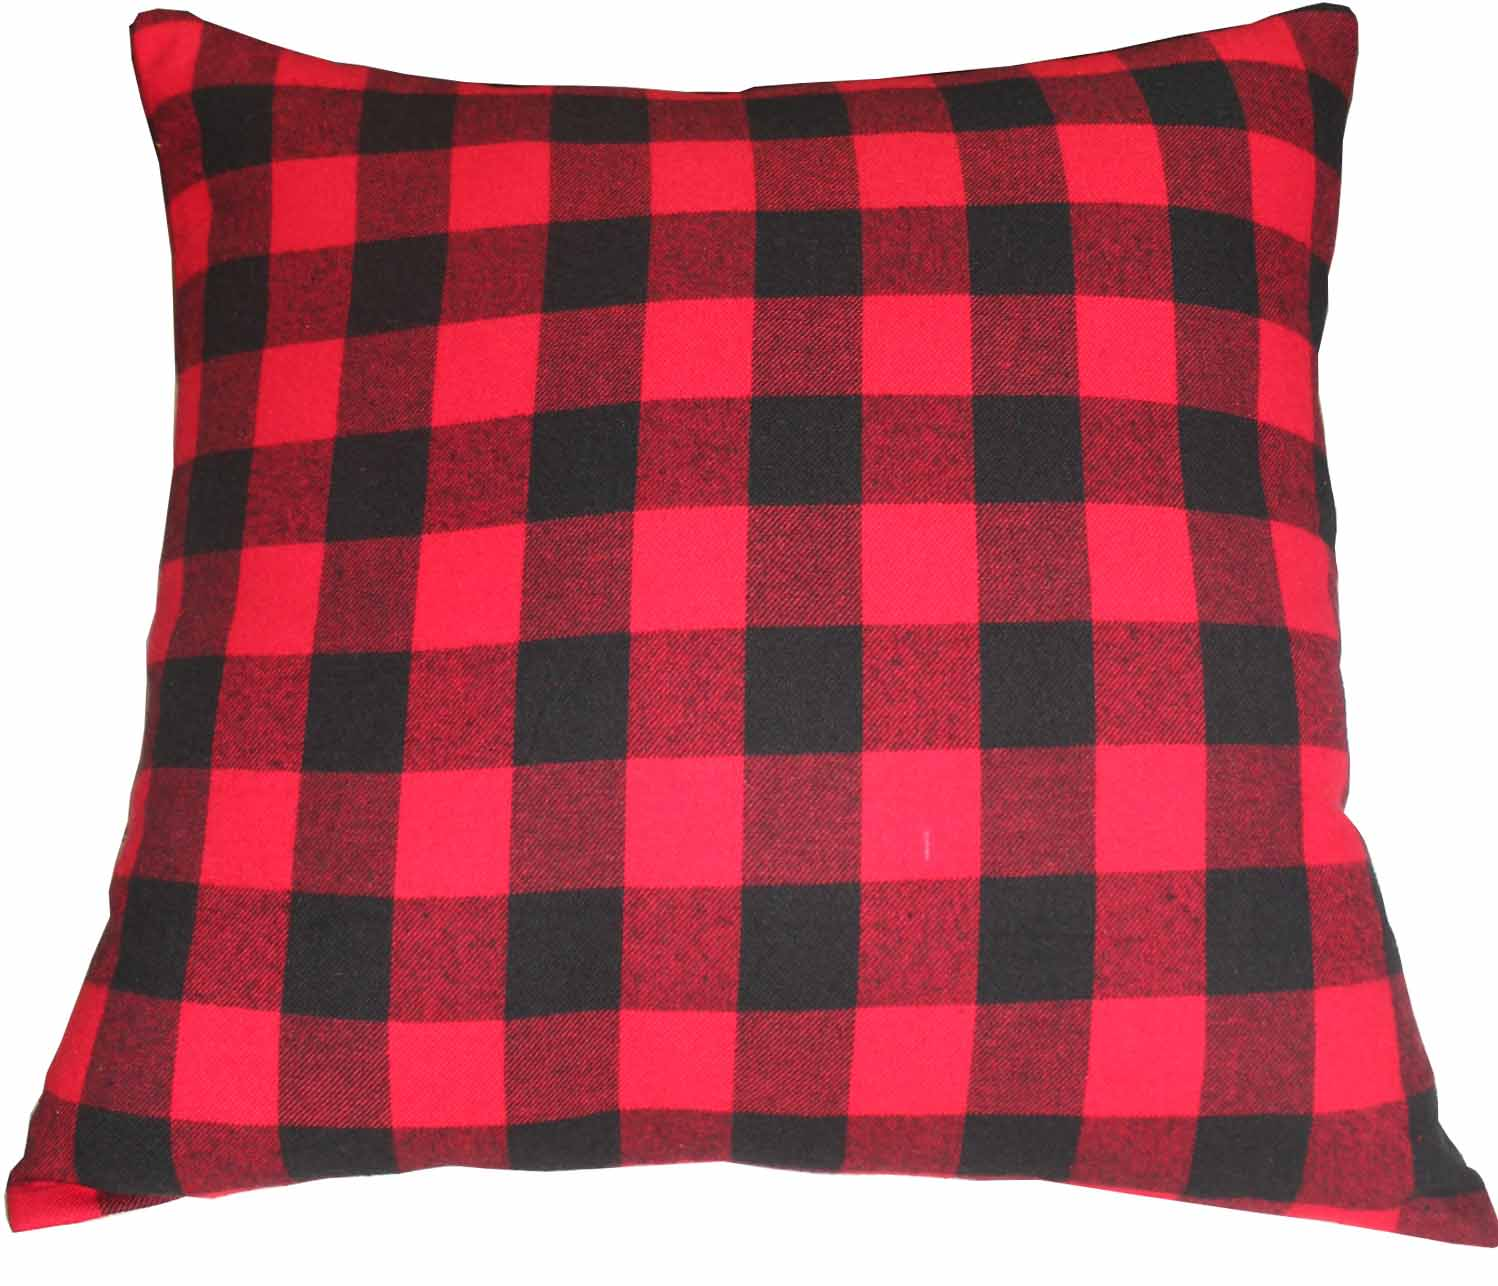 "Red and Black Twill Buffalo Check,Fabric Toss Pillow 16""W x 16""L,Standard"